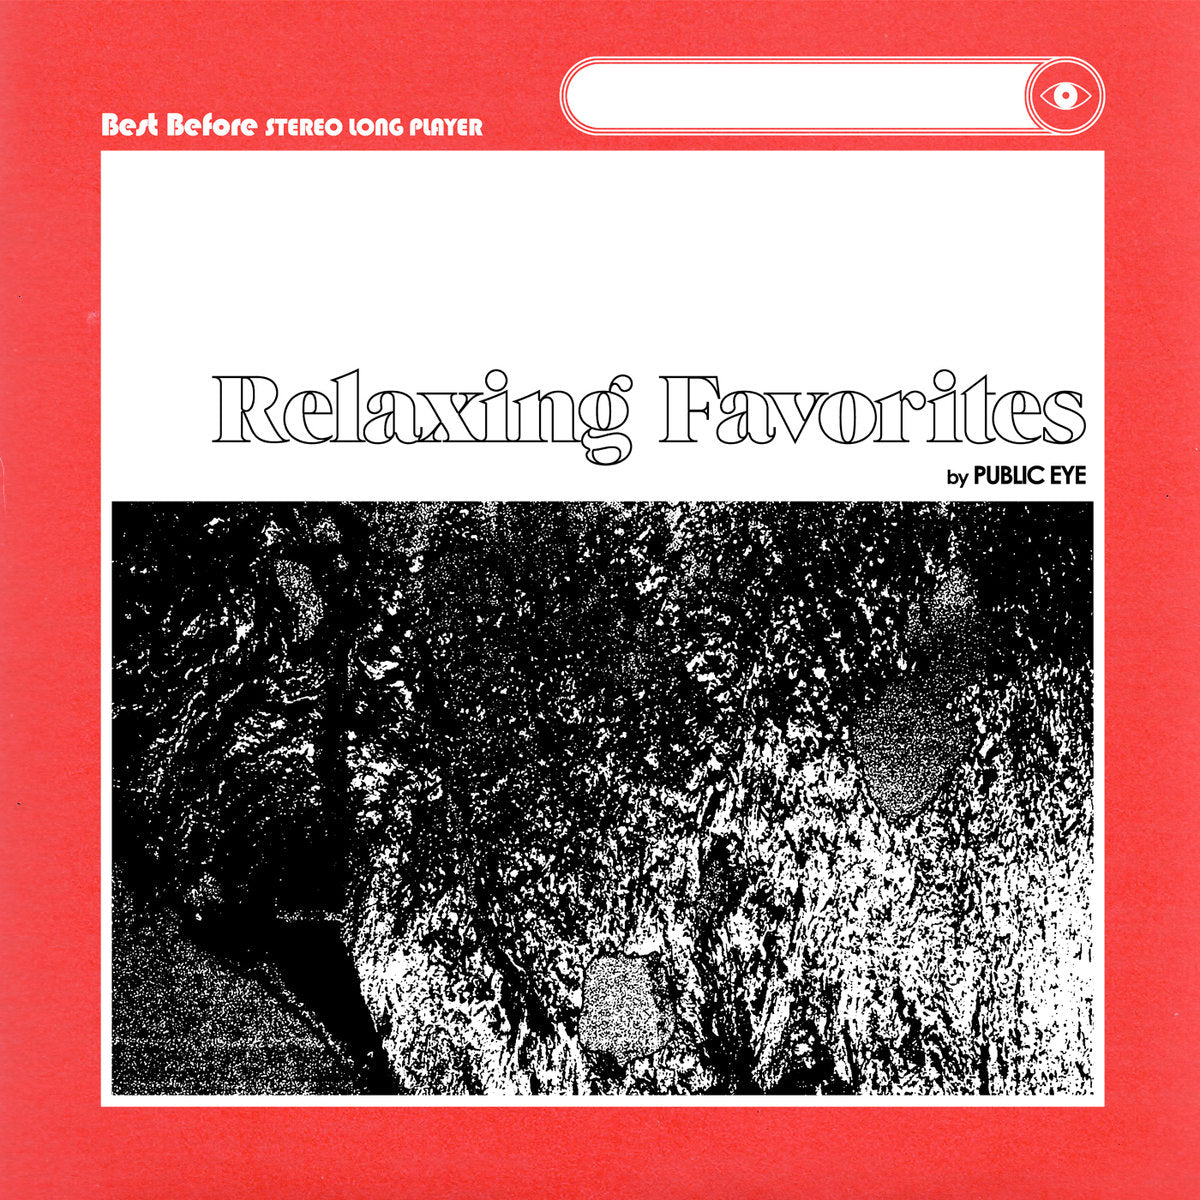 Public Eye - Relaxing Favorites LP